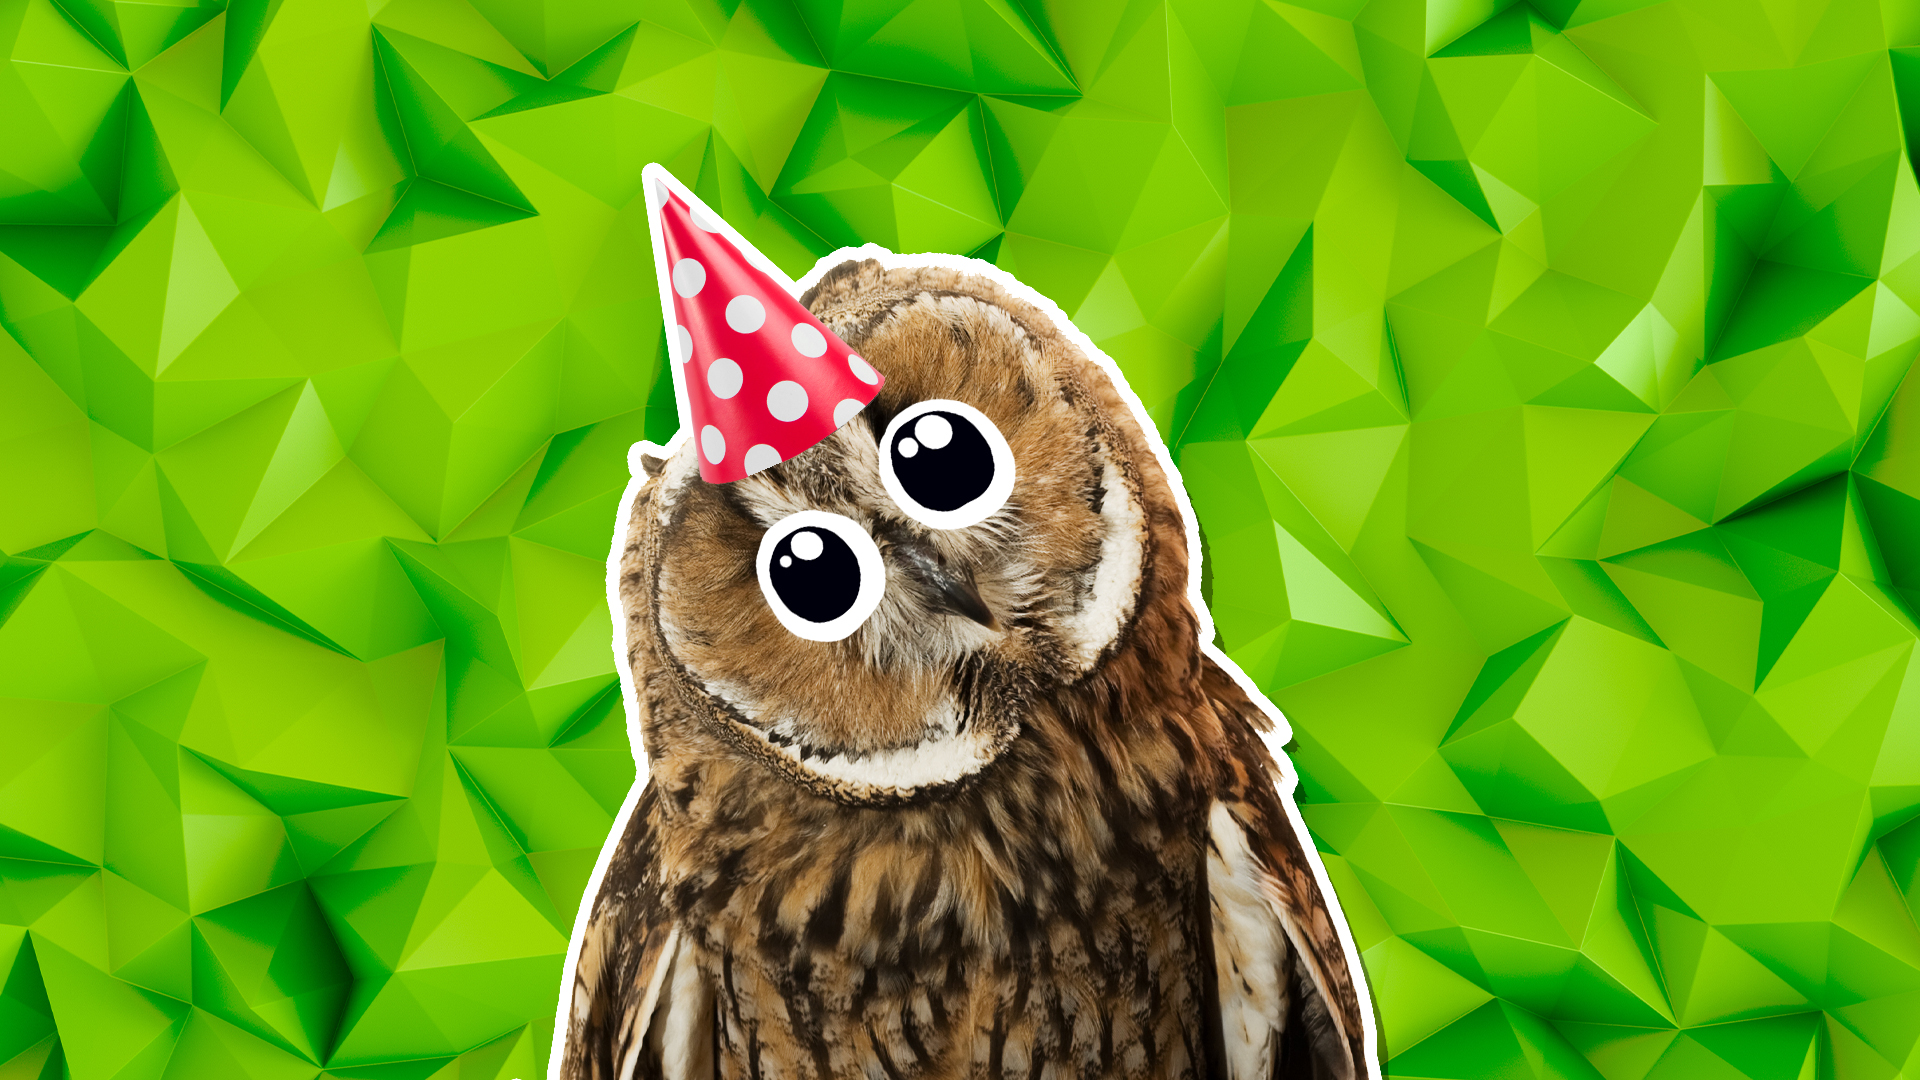 An owl in a party hat